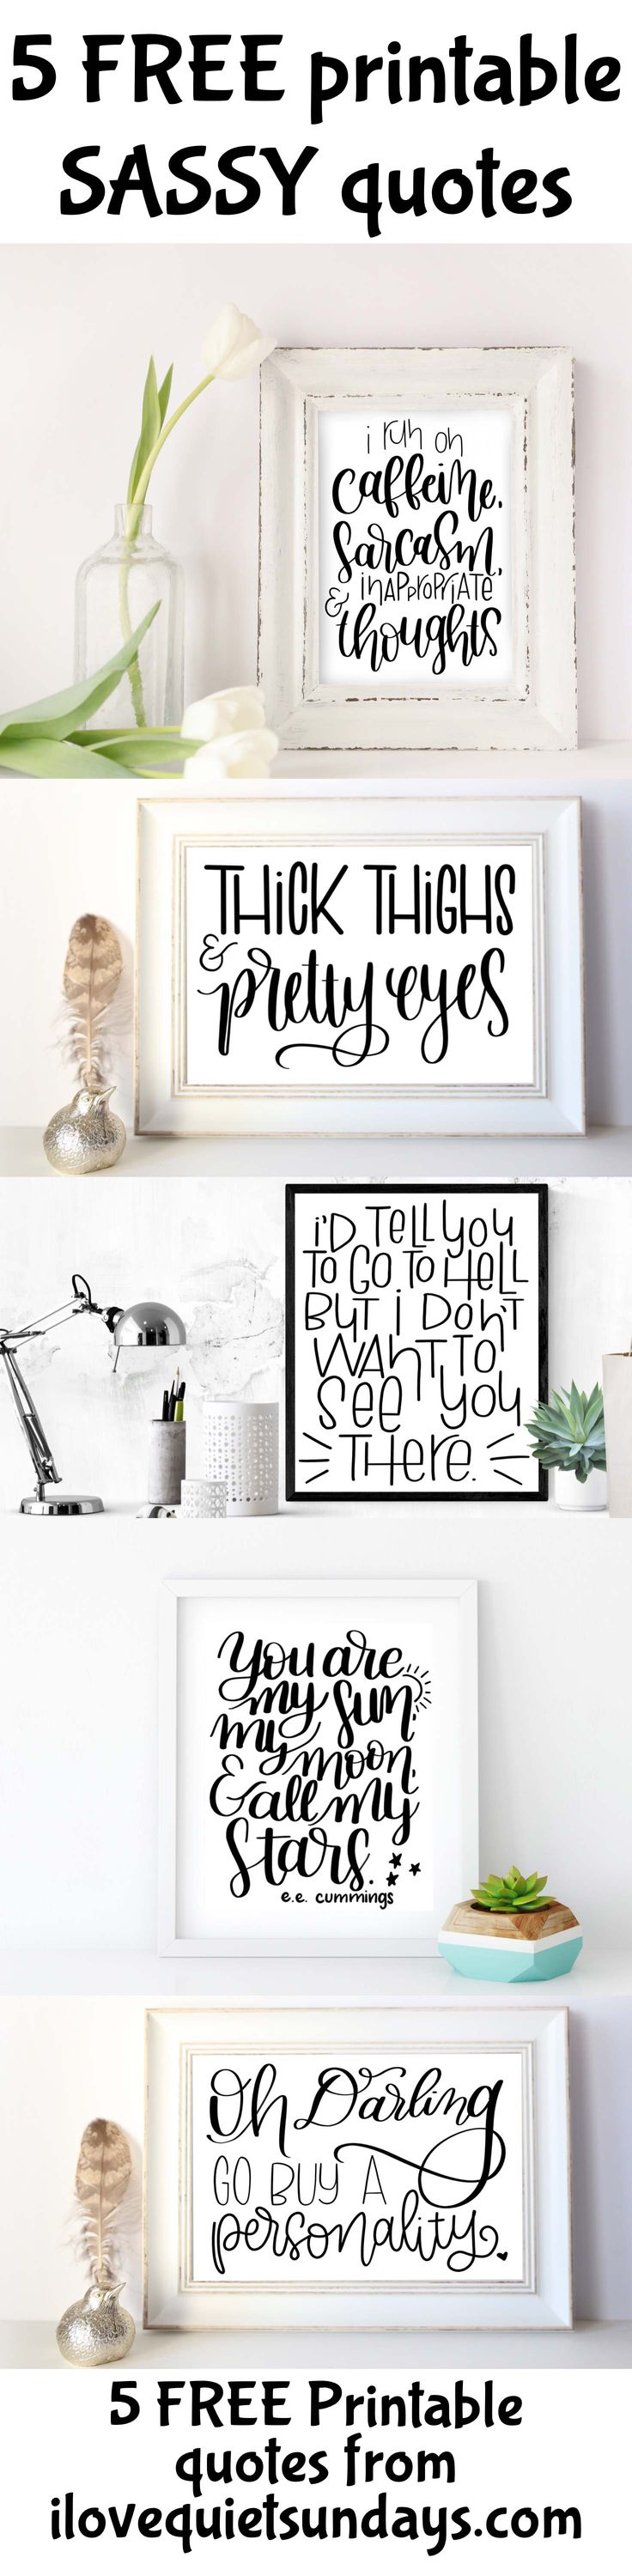 Best 25 printable quotes ideas on pinterest free printable best 25 printable quotes ideas on pinterest free printable quotes free prints and have courage and be kind amipublicfo Image collections